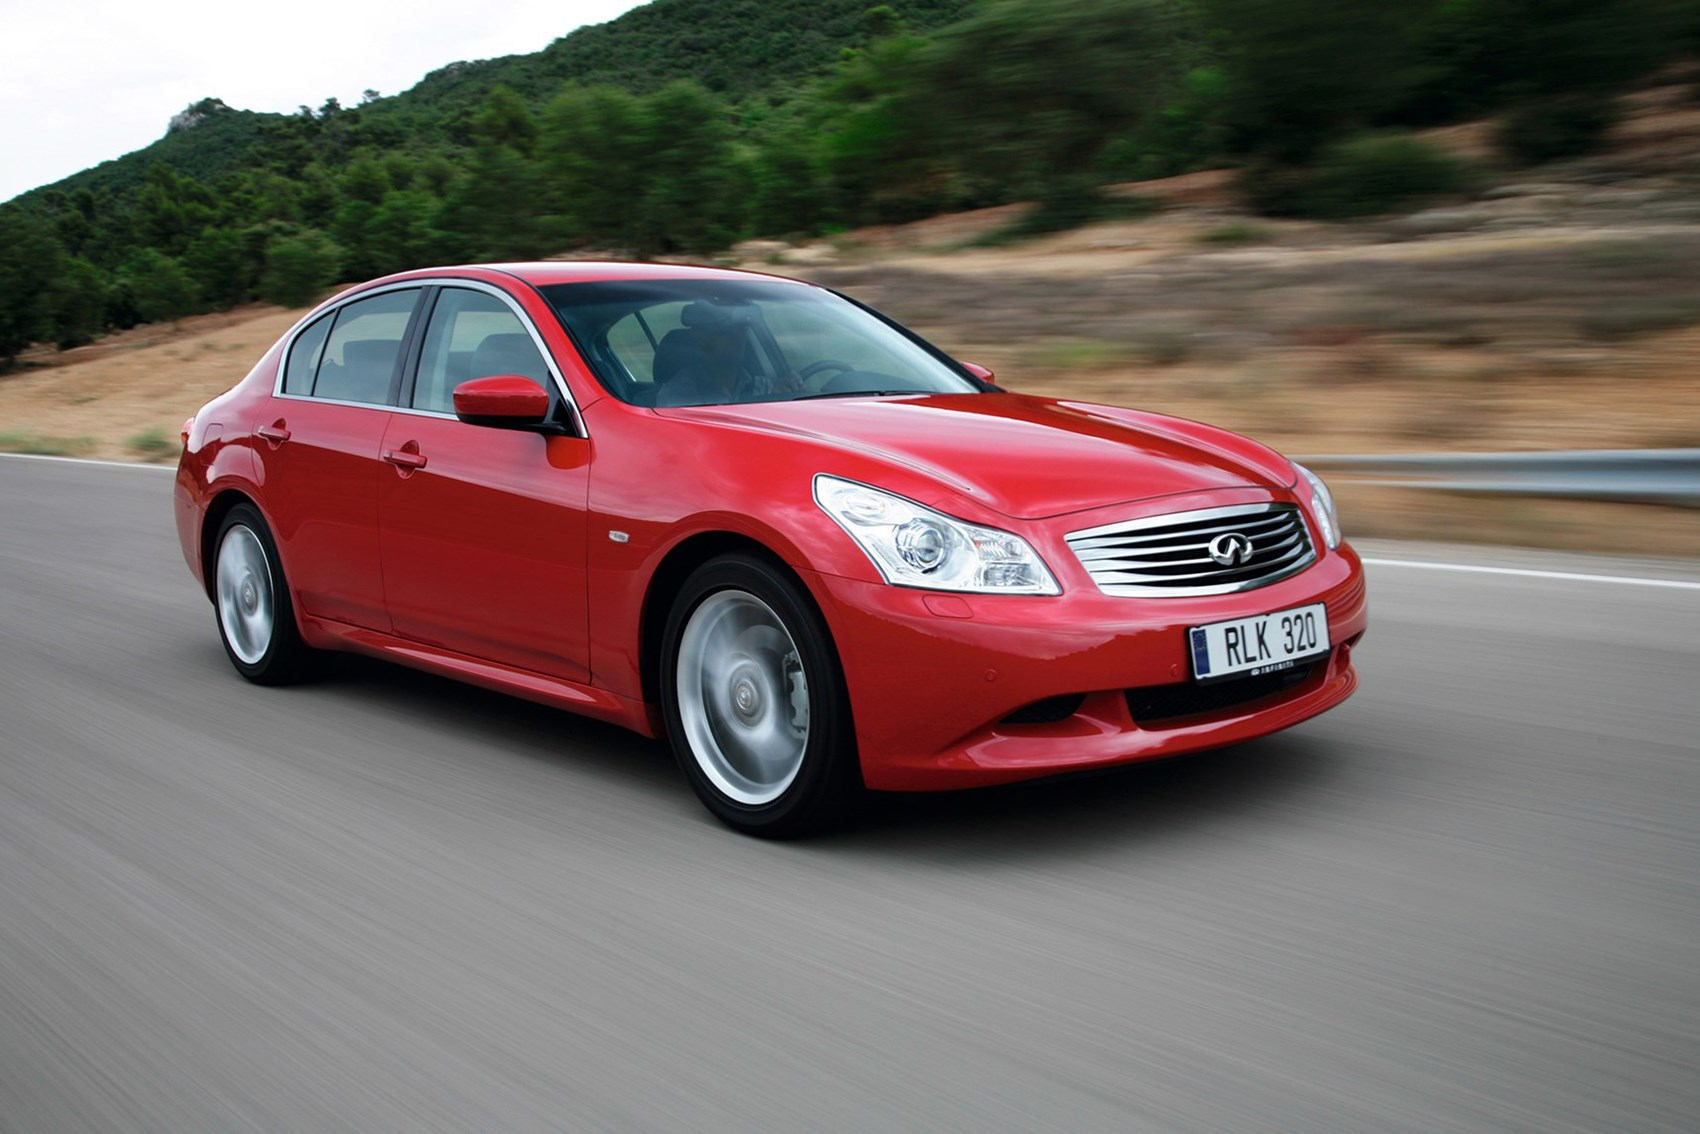 Infiniti G Saloon - luxury cars for less than £10k